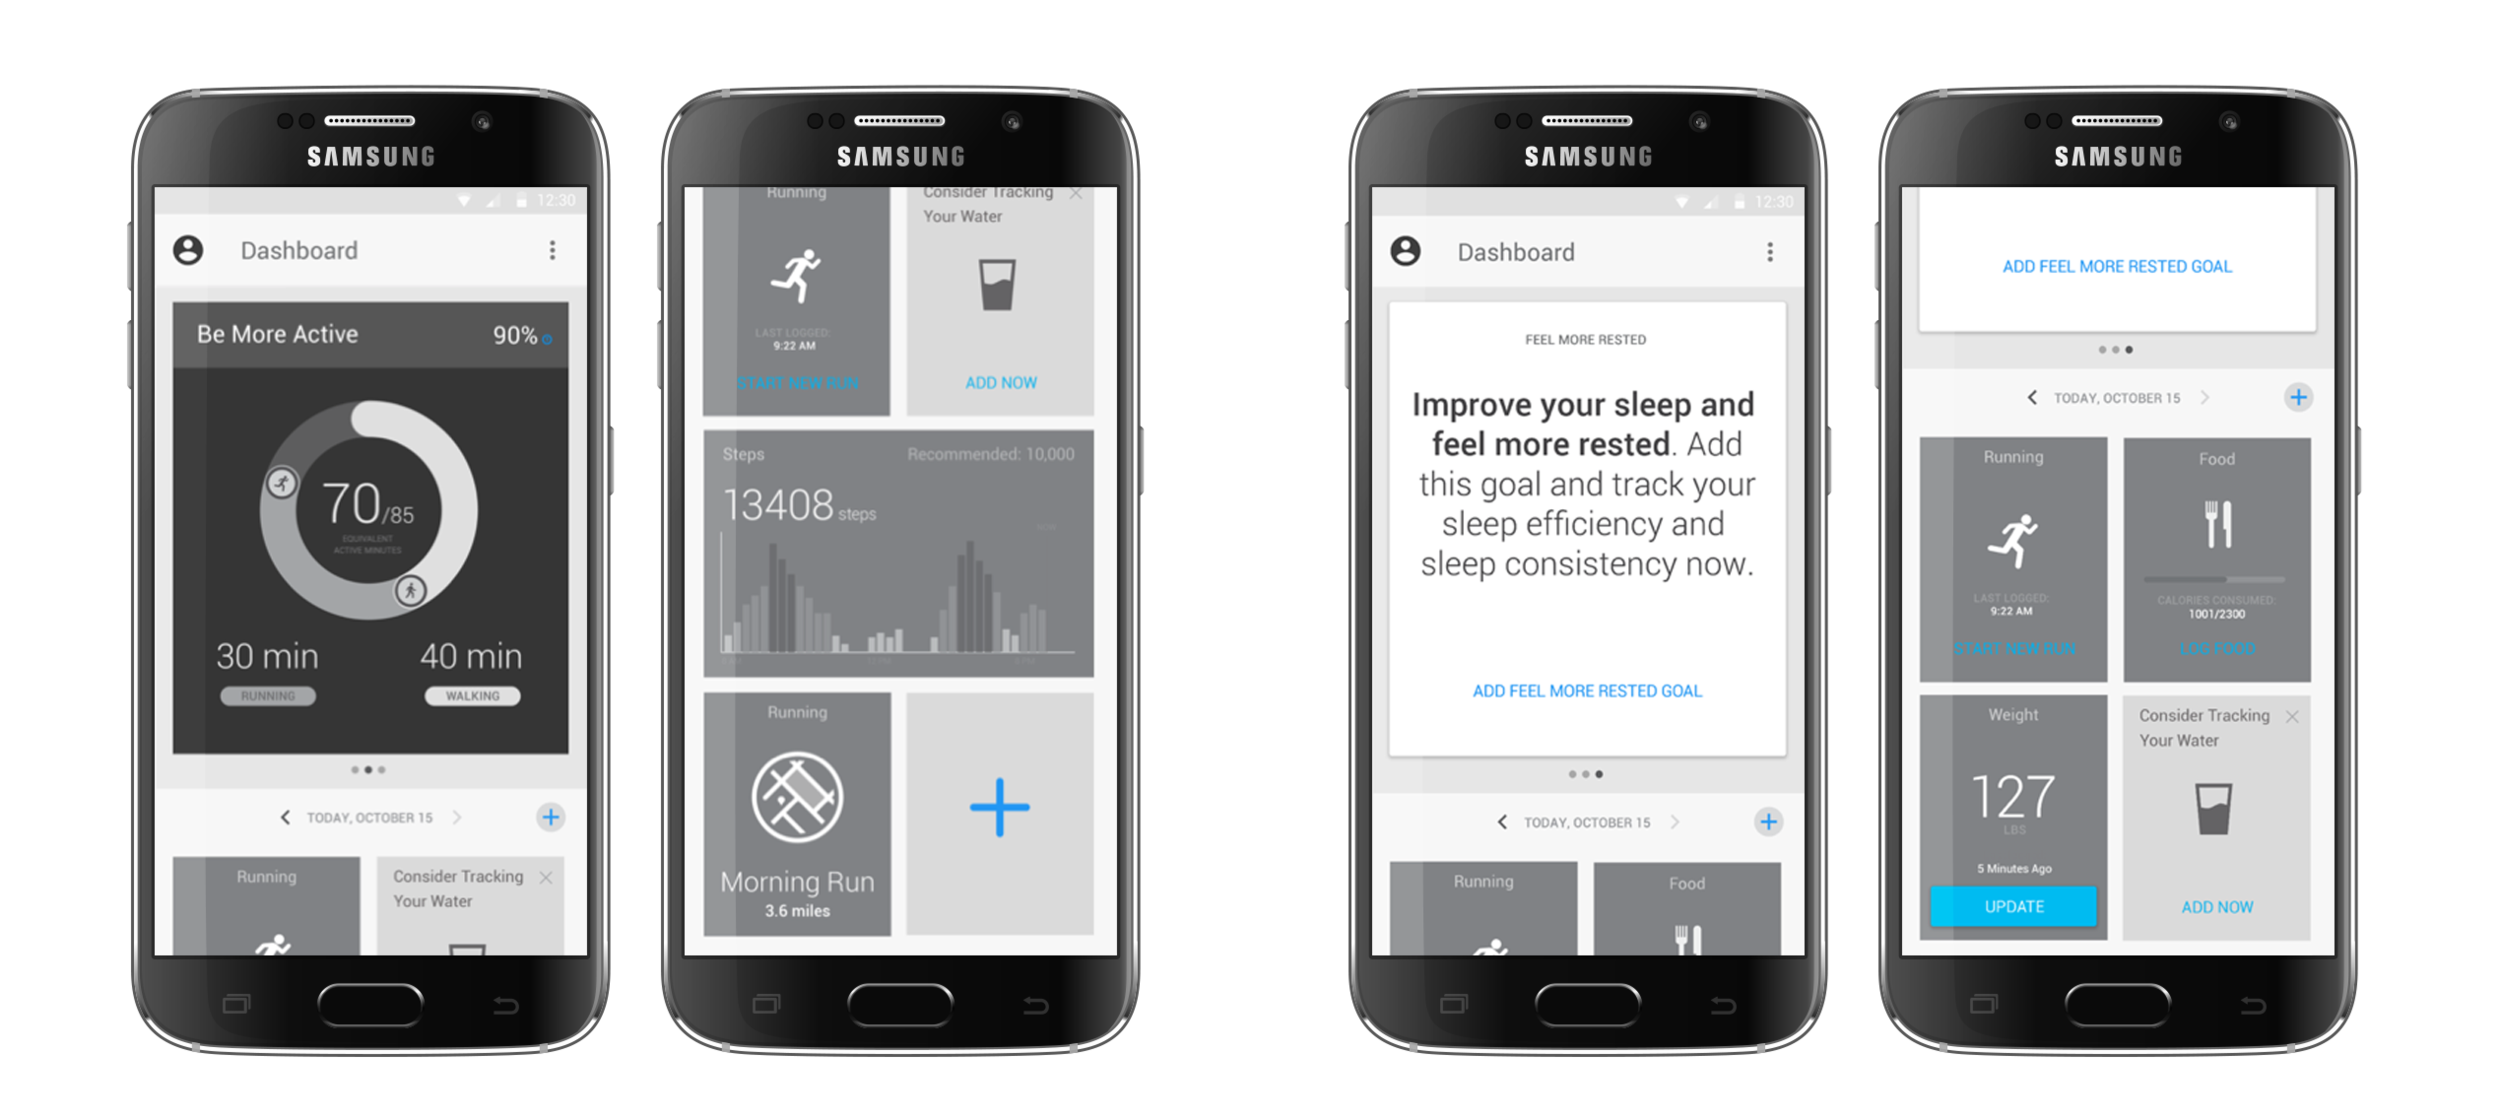 (left) Example of a dashboard with a Be More Active goal and tracker tiles below    (right) Prompts to subscribe to relevant goals allow users to easily customize their health plans